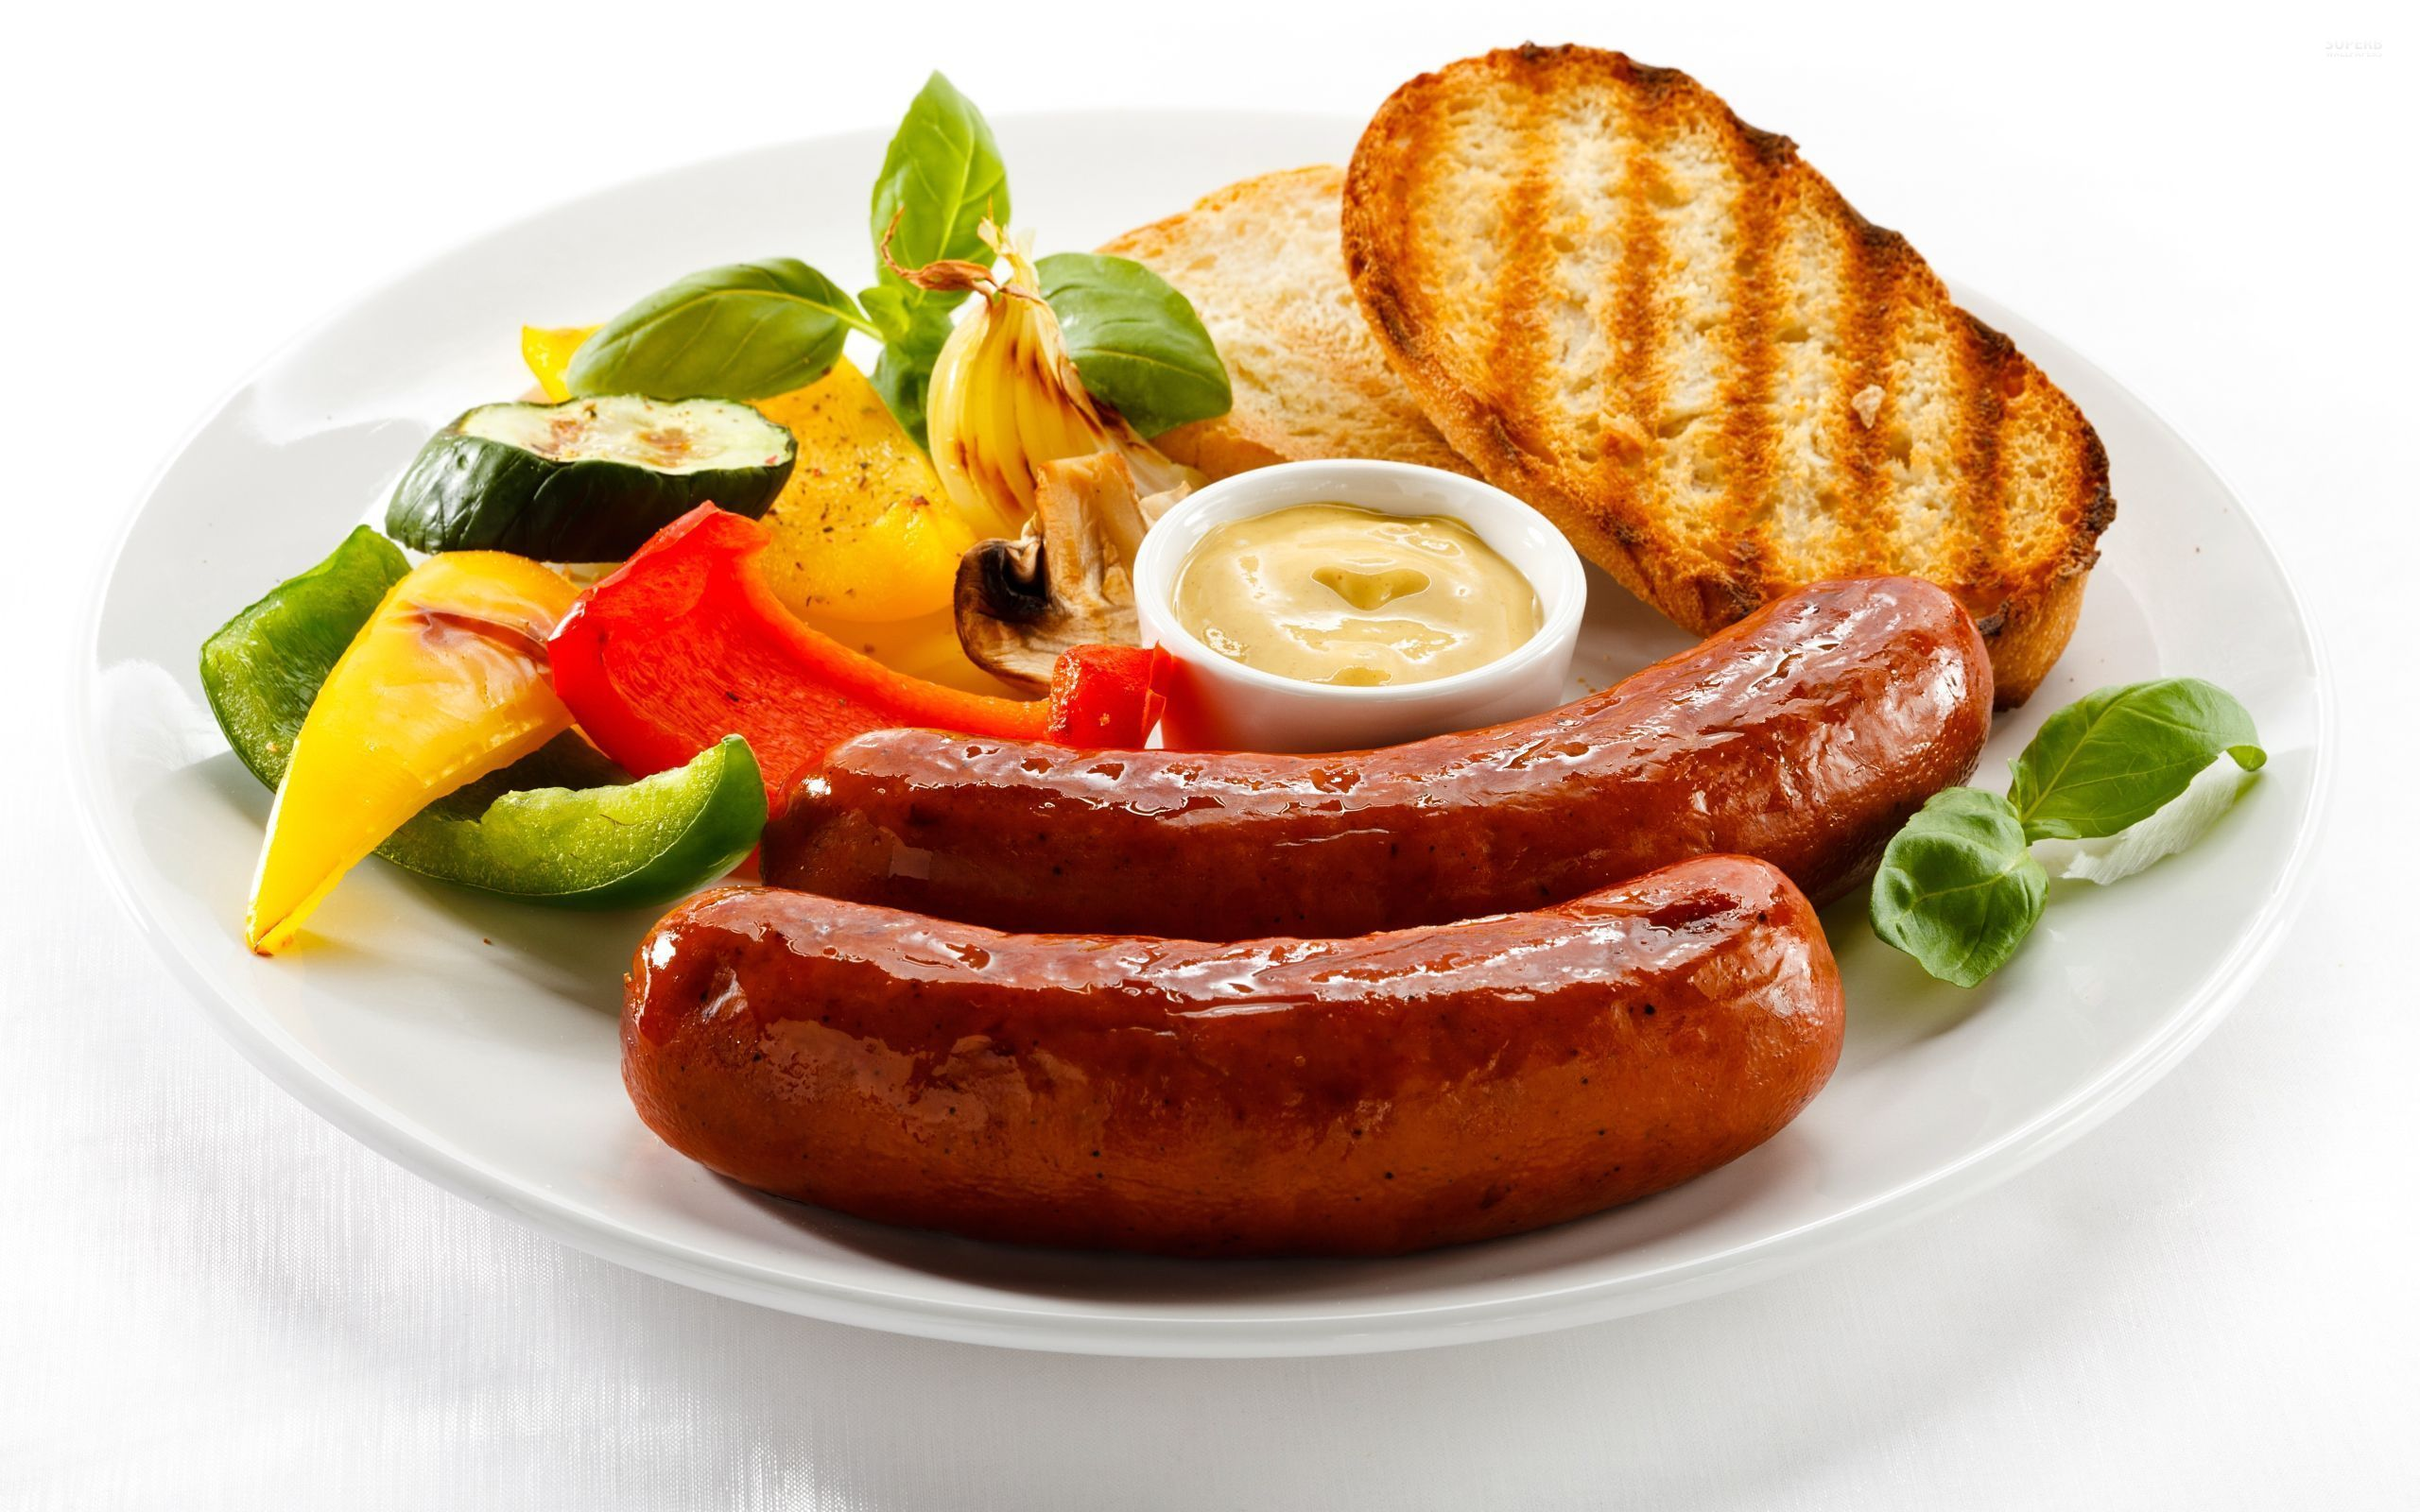 Sausage breakfast wallpaper 2560x1600 jpg